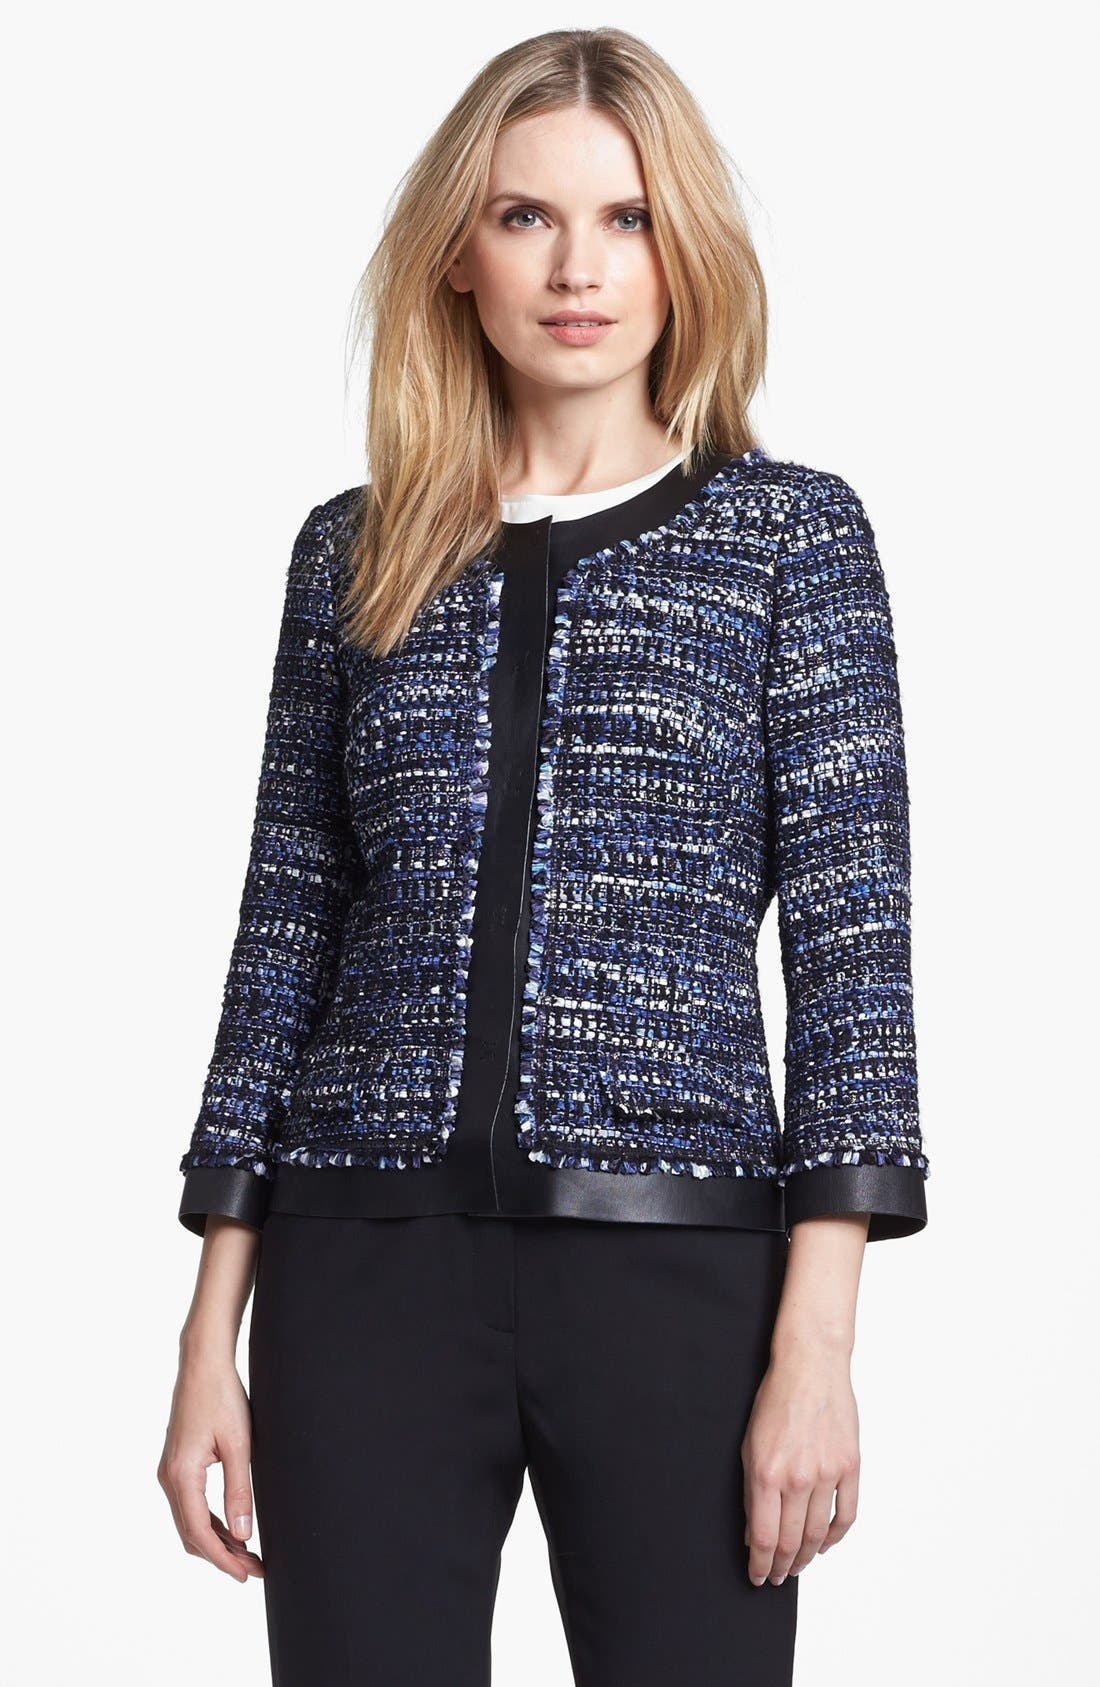 Alternate Image 1 Selected - Lafayette 148 New York 'Marielle' Tweed Jacket